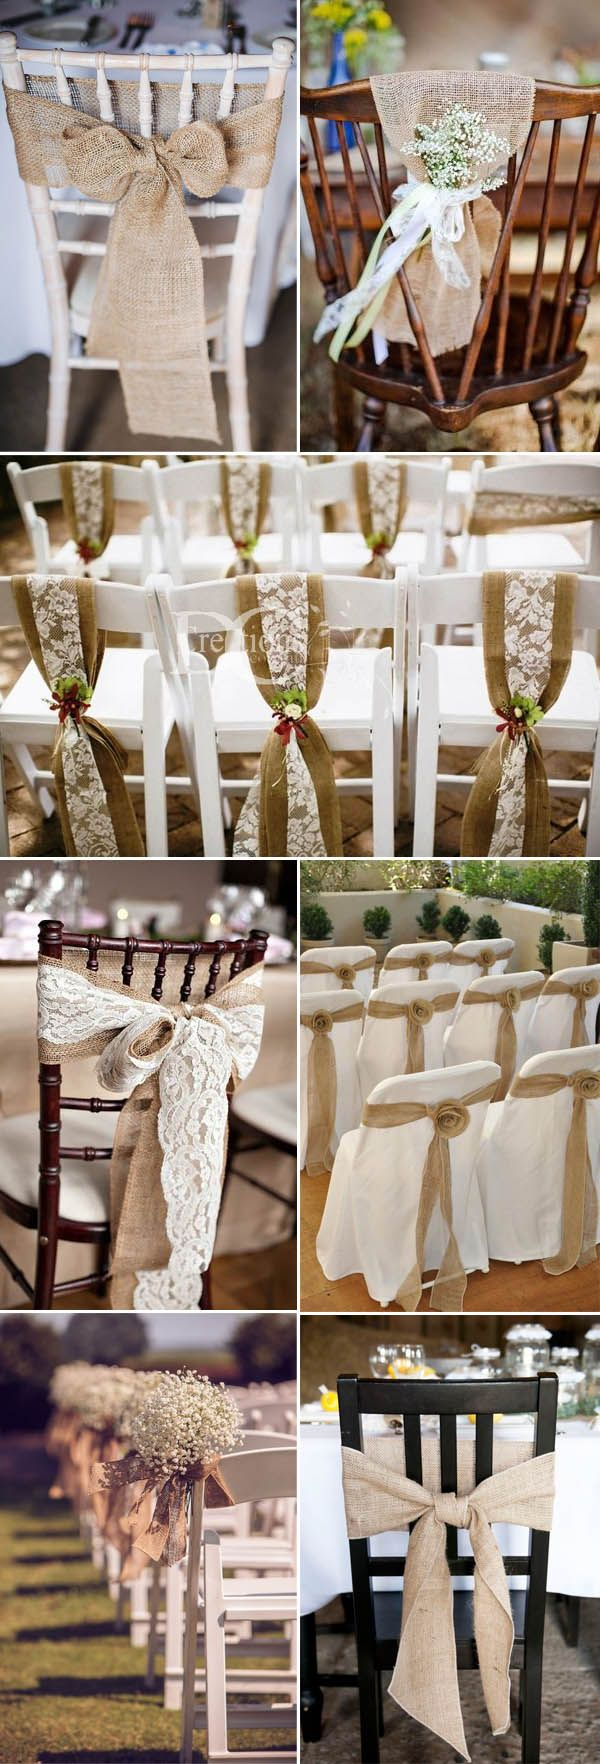 The Most Complete Burlap Rustic Wedding Ideas For Your Inspiration Wedding Chairs Dream Wedding Vintage Wedding